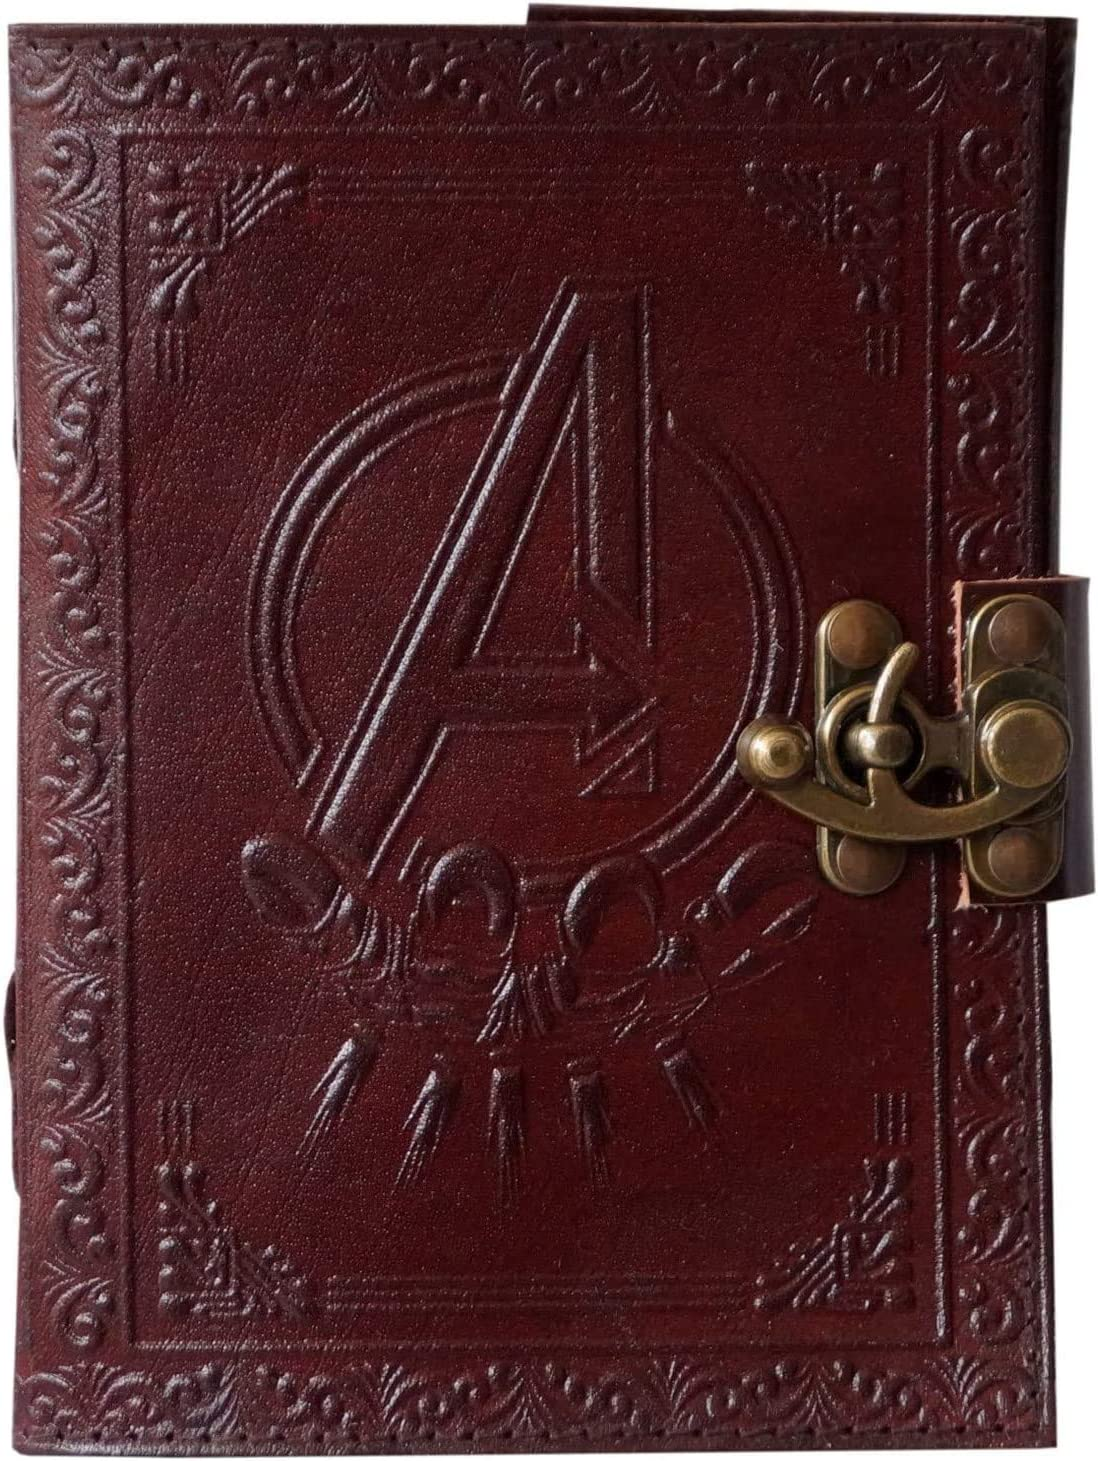 amazon com handmade leather journal avengers marvel logo embossed personal organizer daily notepad travel writing notebook sketchbook office diary college book unlined paper 7 x 5 inches brown office products handmade leather journal avengers marvel logo embossed personal organizer daily notepad travel writing notebook sketchbook office diary college book